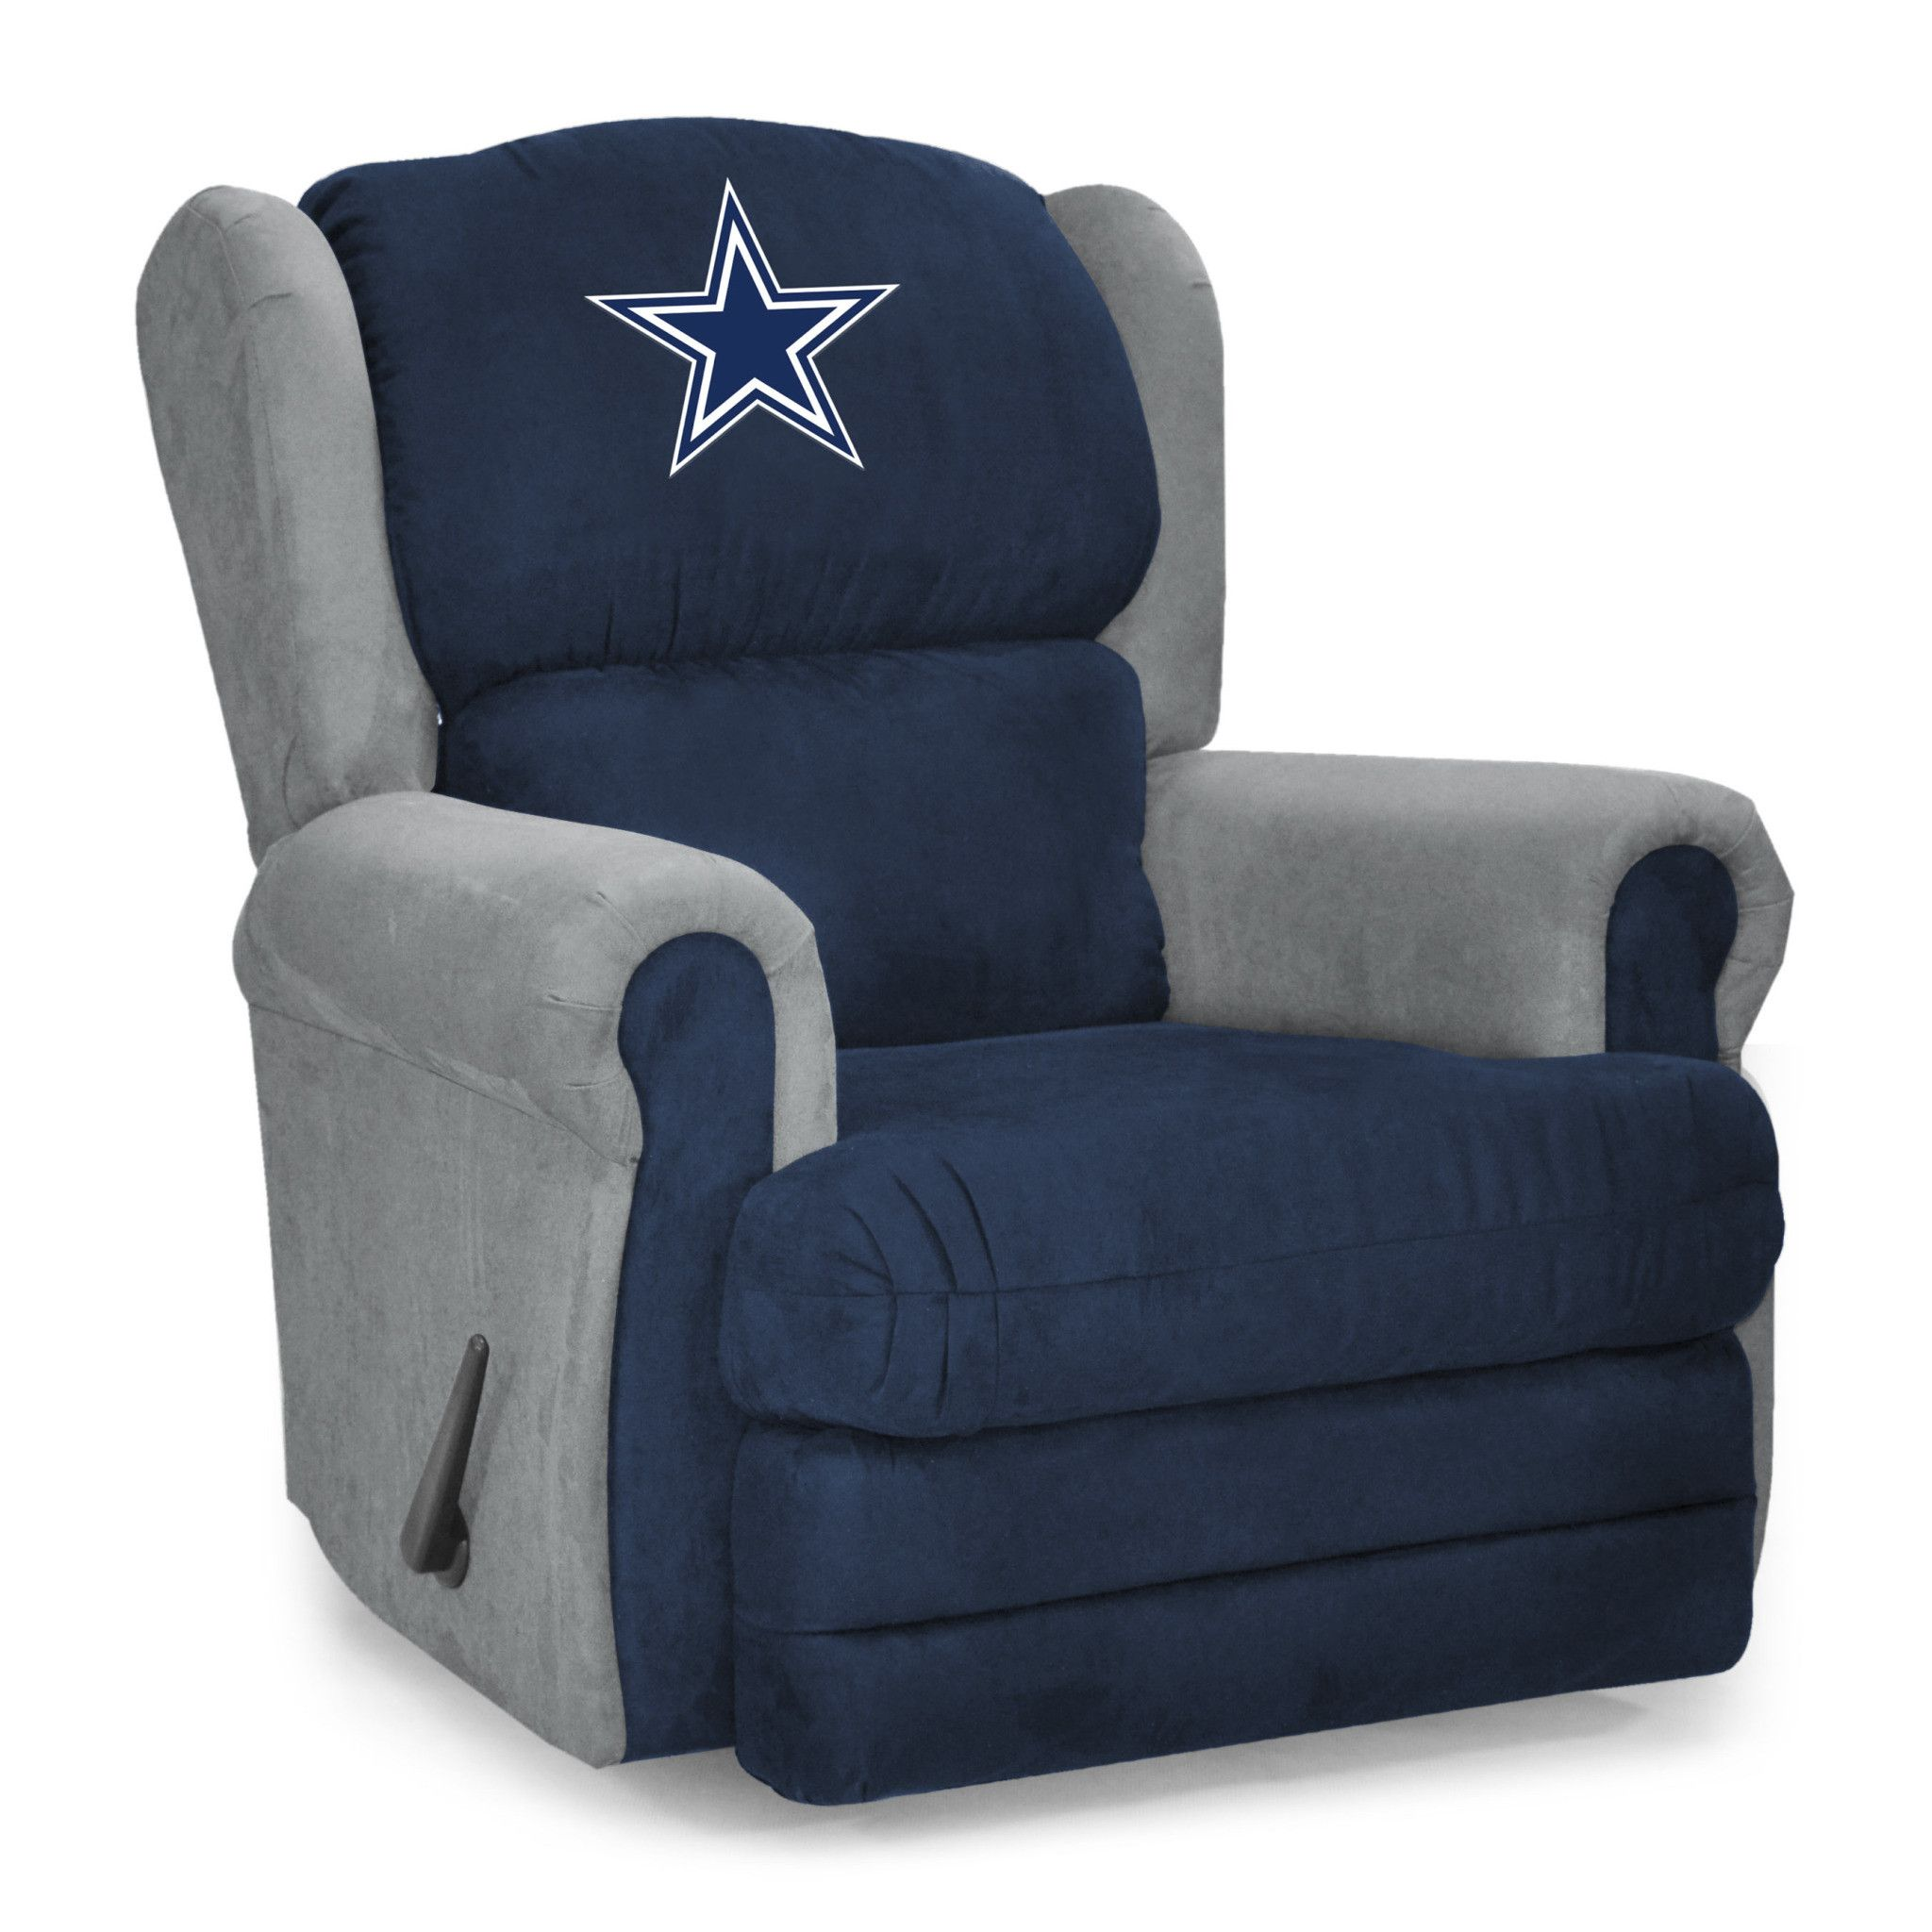 Use this Exclusive coupon code PINFIVE to receive an additional 5% off the Dallas · Packers NflSteeler NationReclinersPittsburgh ...  sc 1 st  Pinterest & Use this Exclusive coupon code: PINFIVE to receive an additional 5 ... islam-shia.org